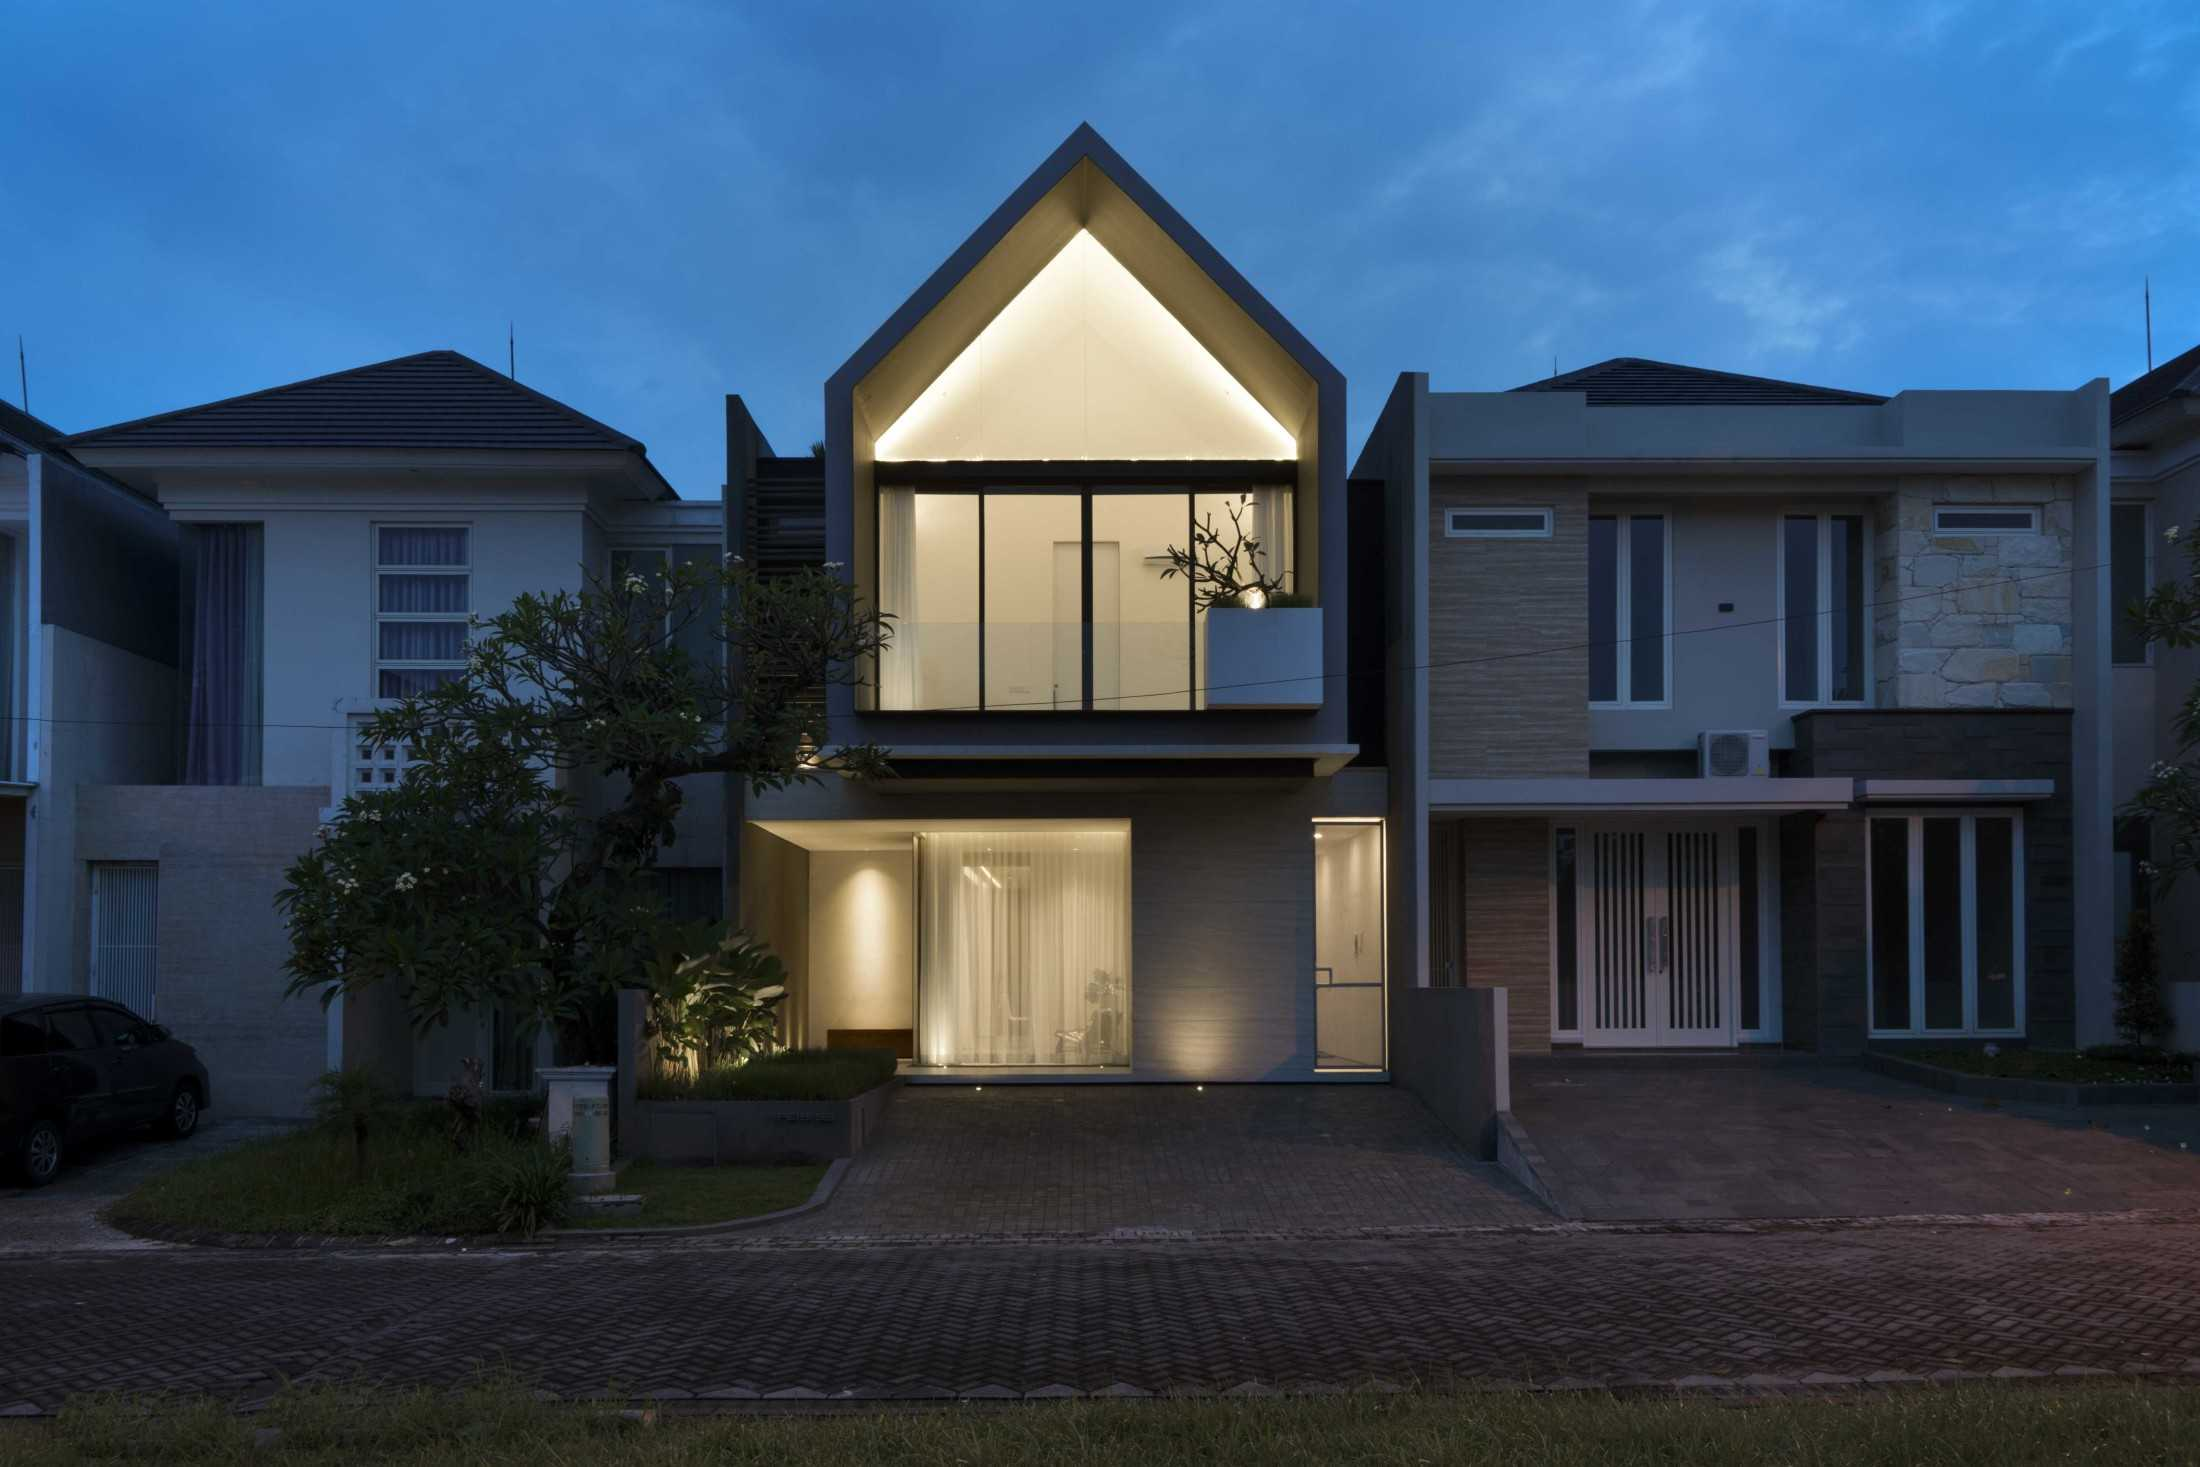 Simple Projects Architecture 'hhh' House Surabaya, Kota Sby, Jawa Timur, Indonesia  Simple-Projects-Architecture-Hhh-House  75054